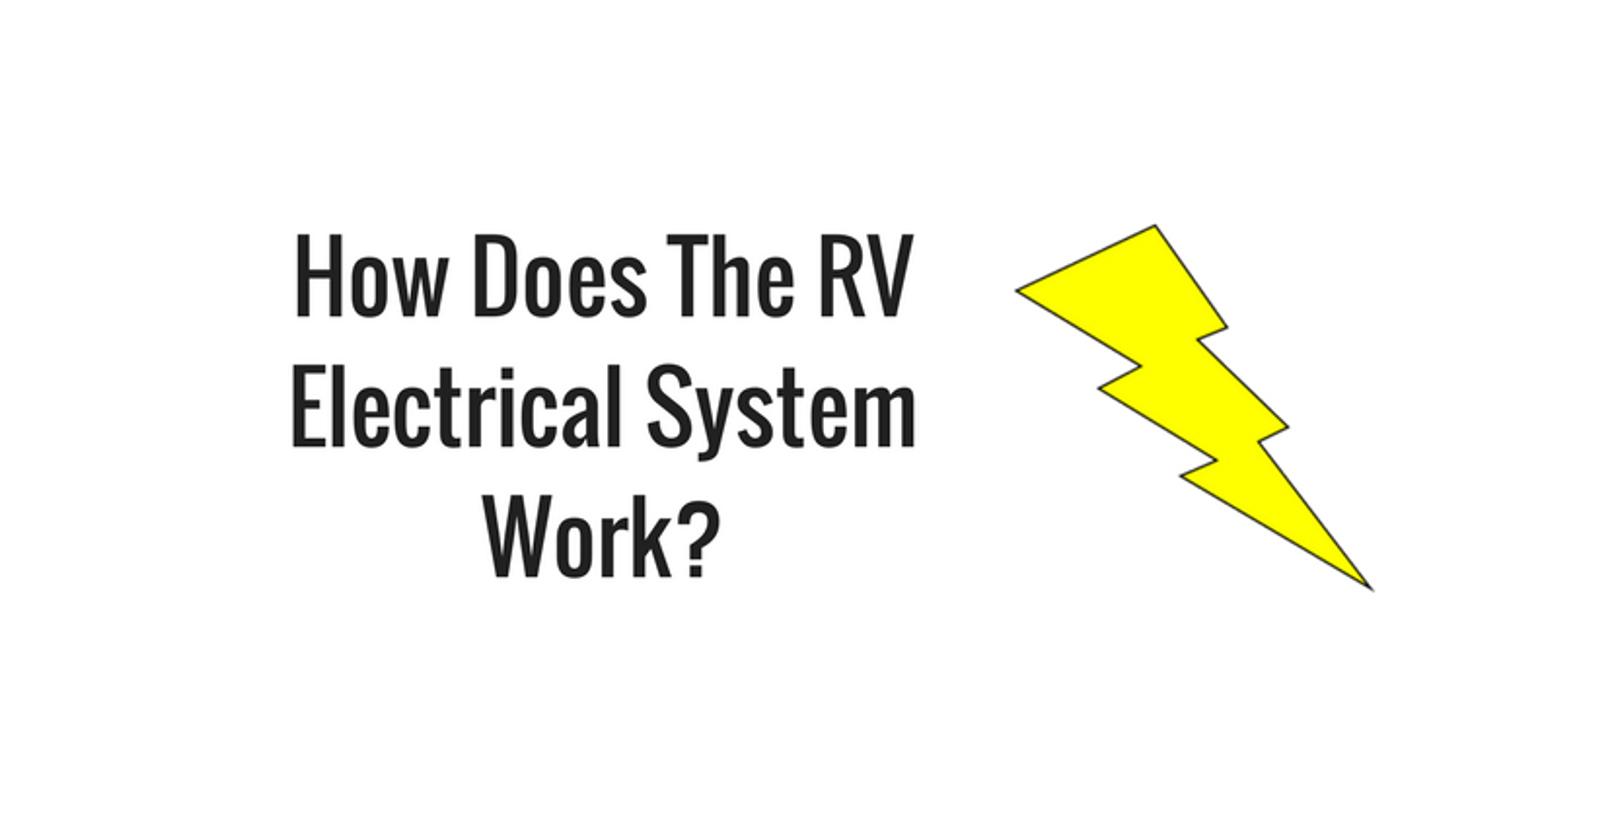 How Does the RV Electrical System Work?